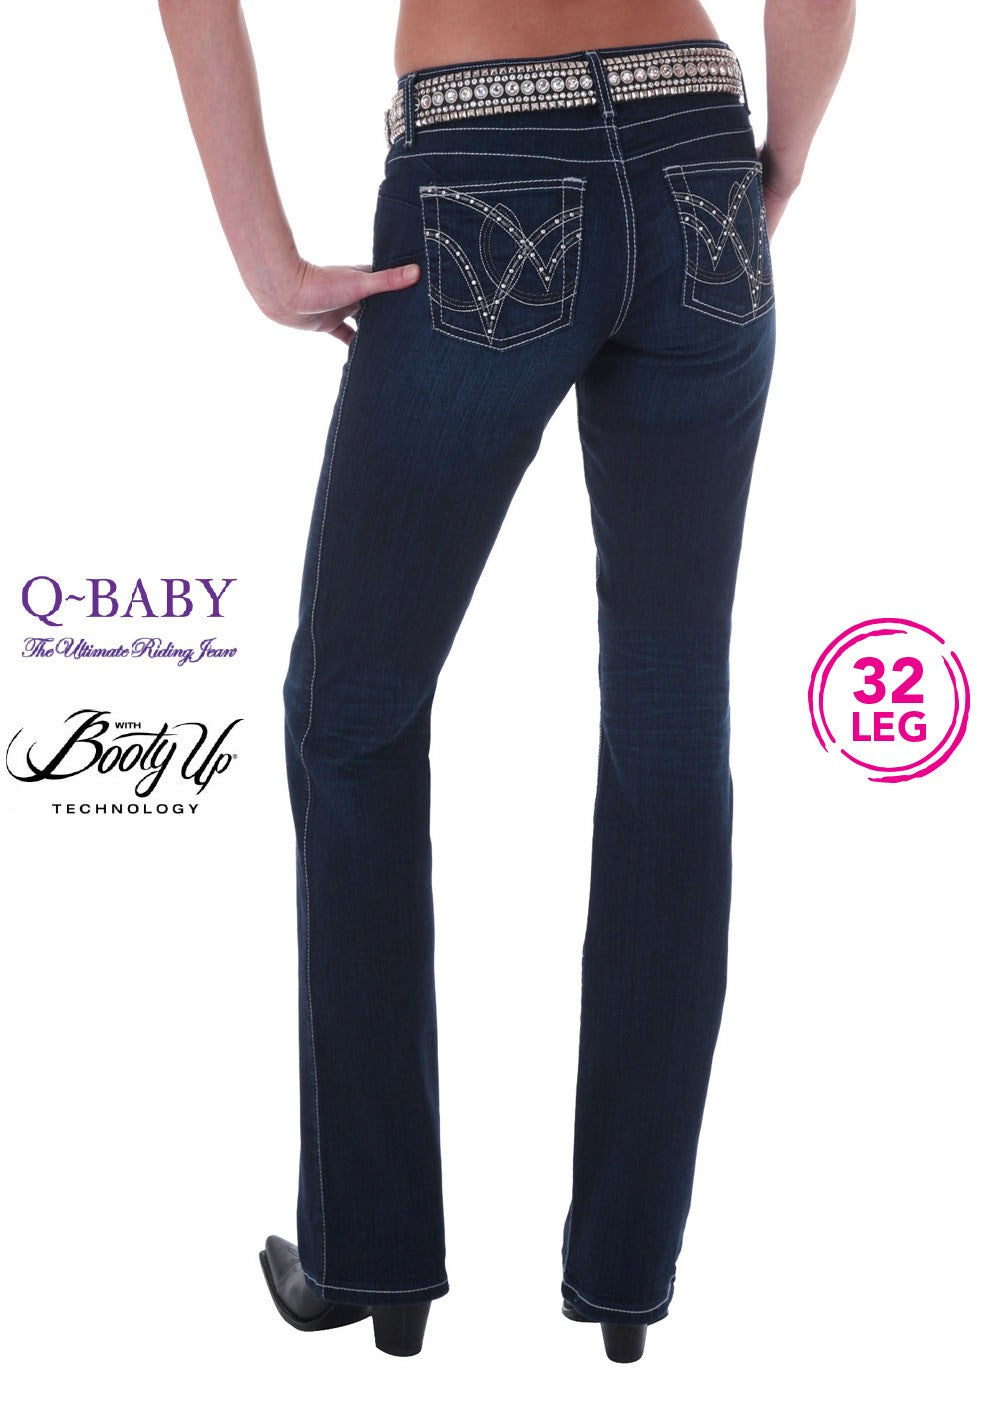 Womens | Jeans | Waist Low | Bootcut | 32"